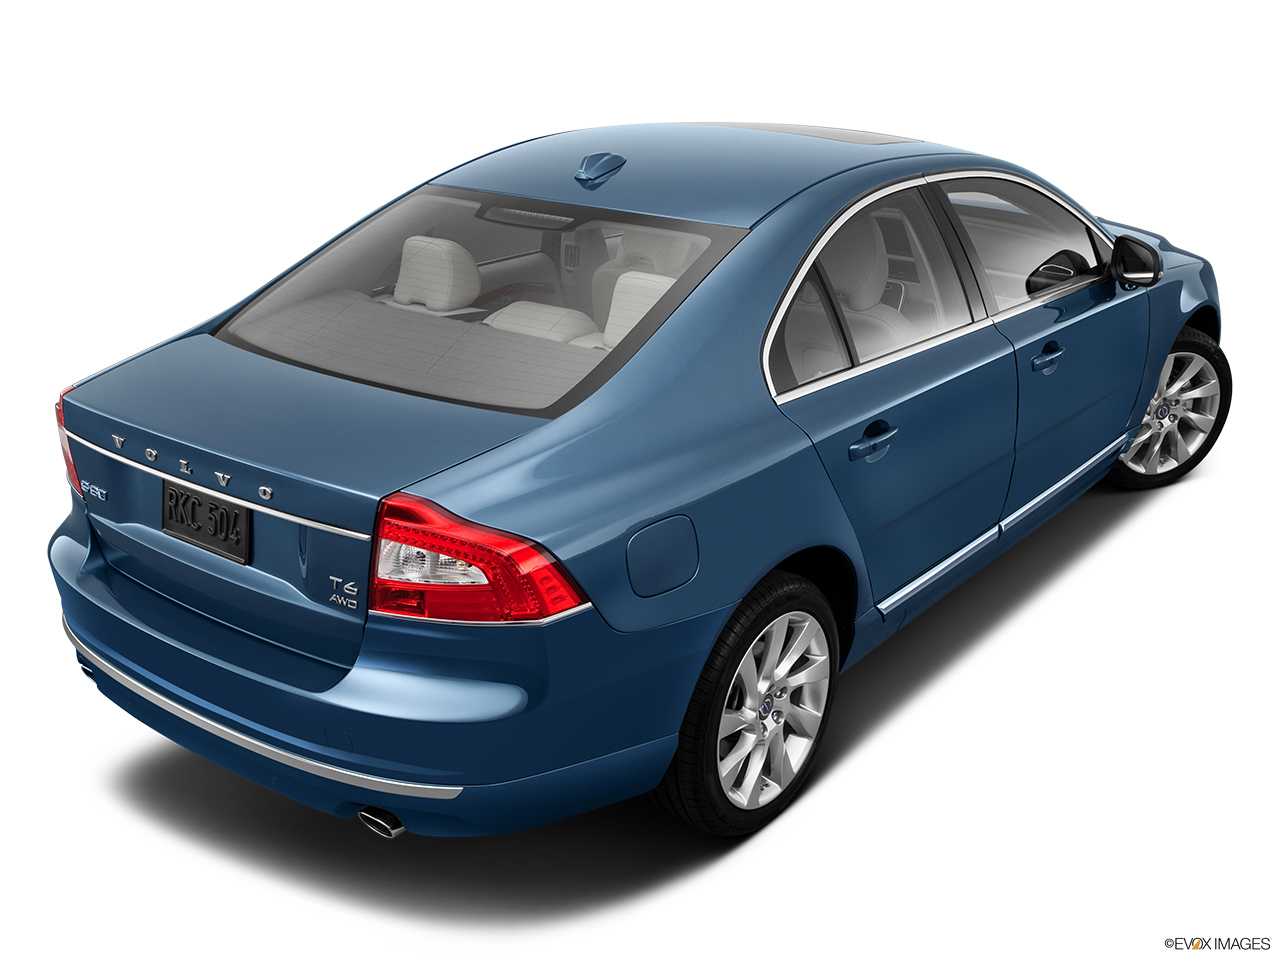 2014 Volvo S80 T6 AWD Platinum Rear 3/4 angle view.